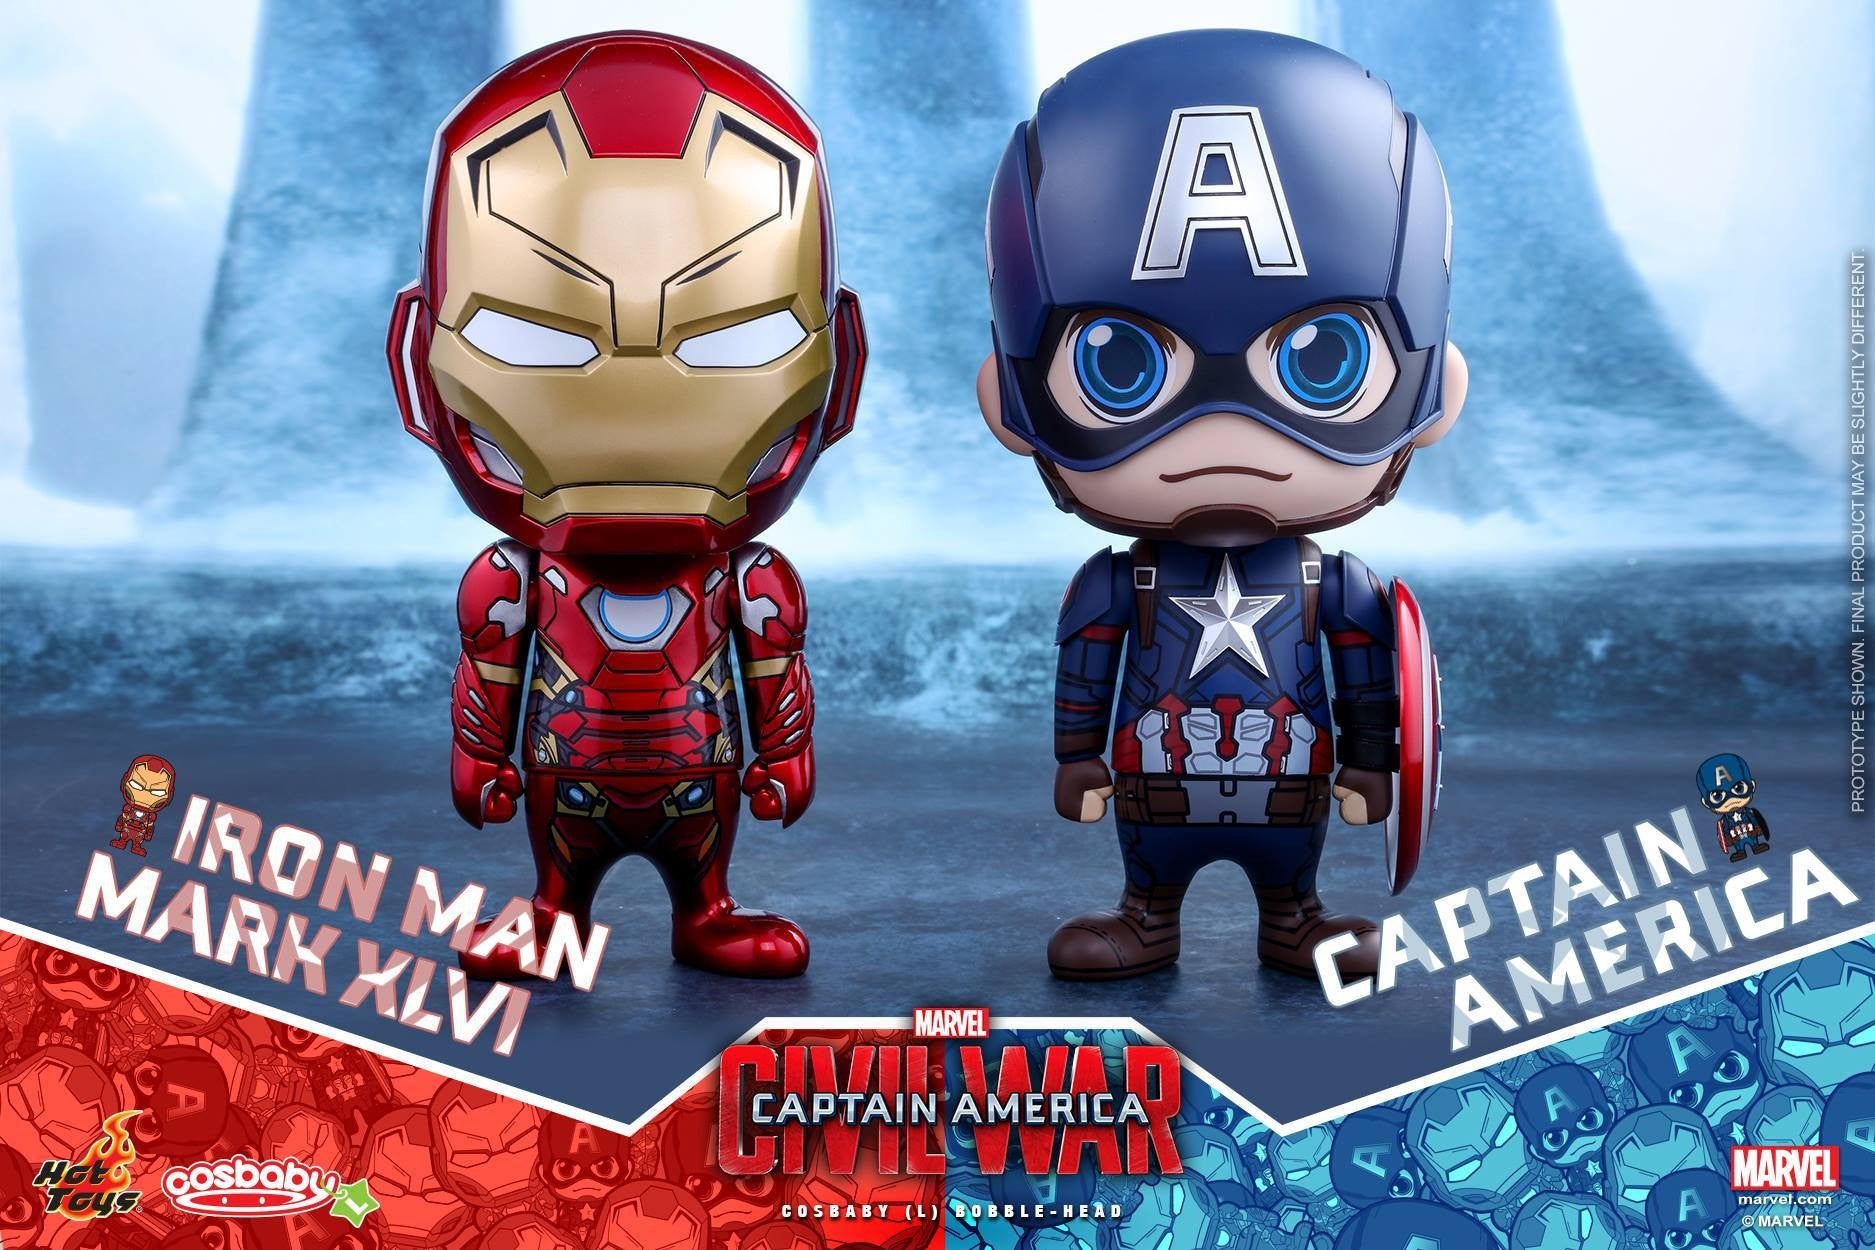 Hot Toys - COSB324 - Captain America: Civil War - Iron Man Mark XLVI Cosbaby (L) Bobble-Head - Marvelous Toys - 5